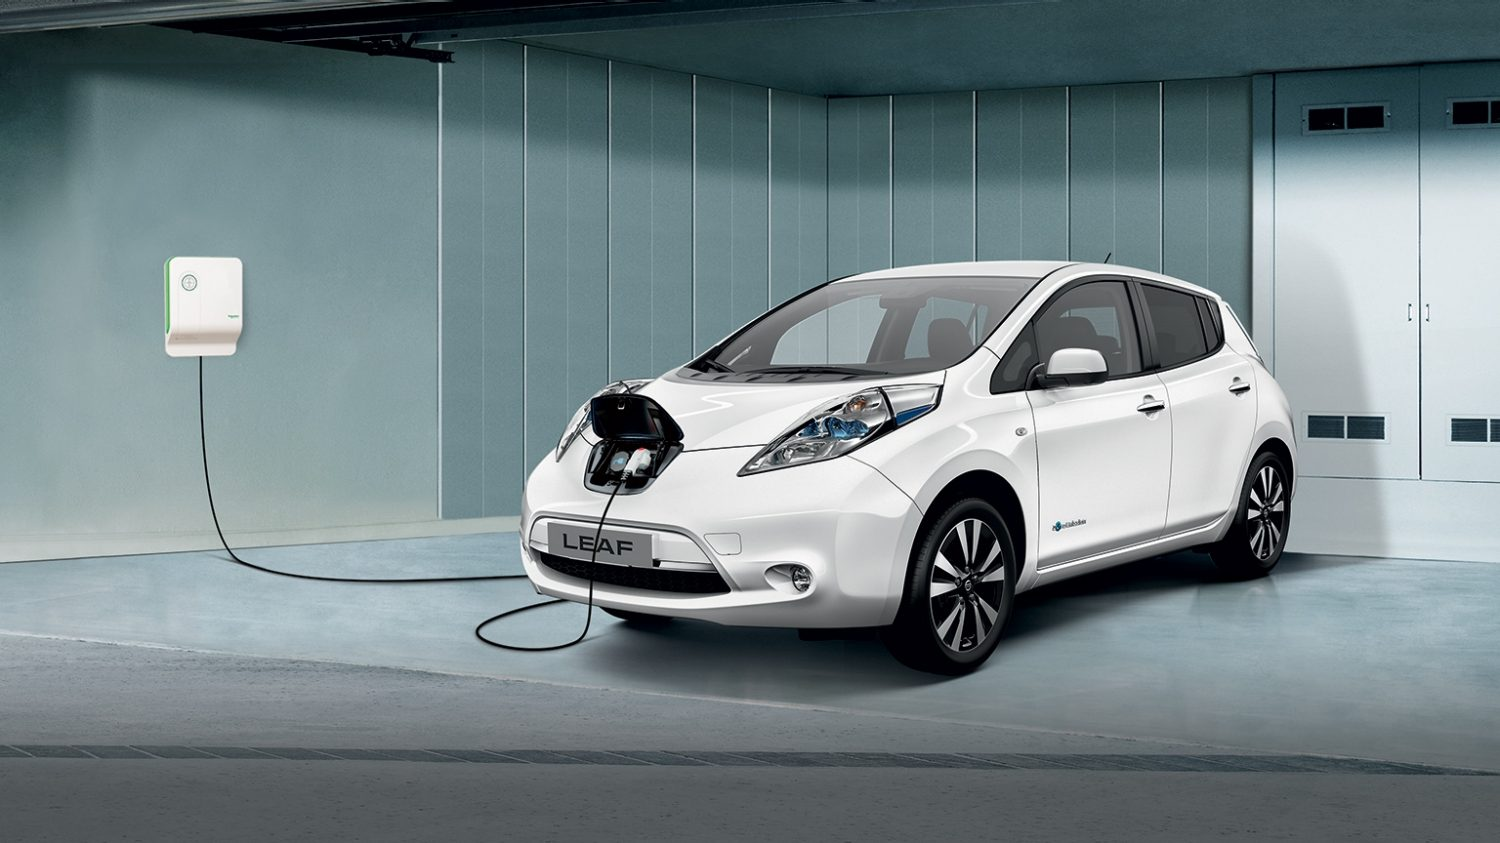 autonomie et recharge nissan leaf voiture lectrique nissan. Black Bedroom Furniture Sets. Home Design Ideas